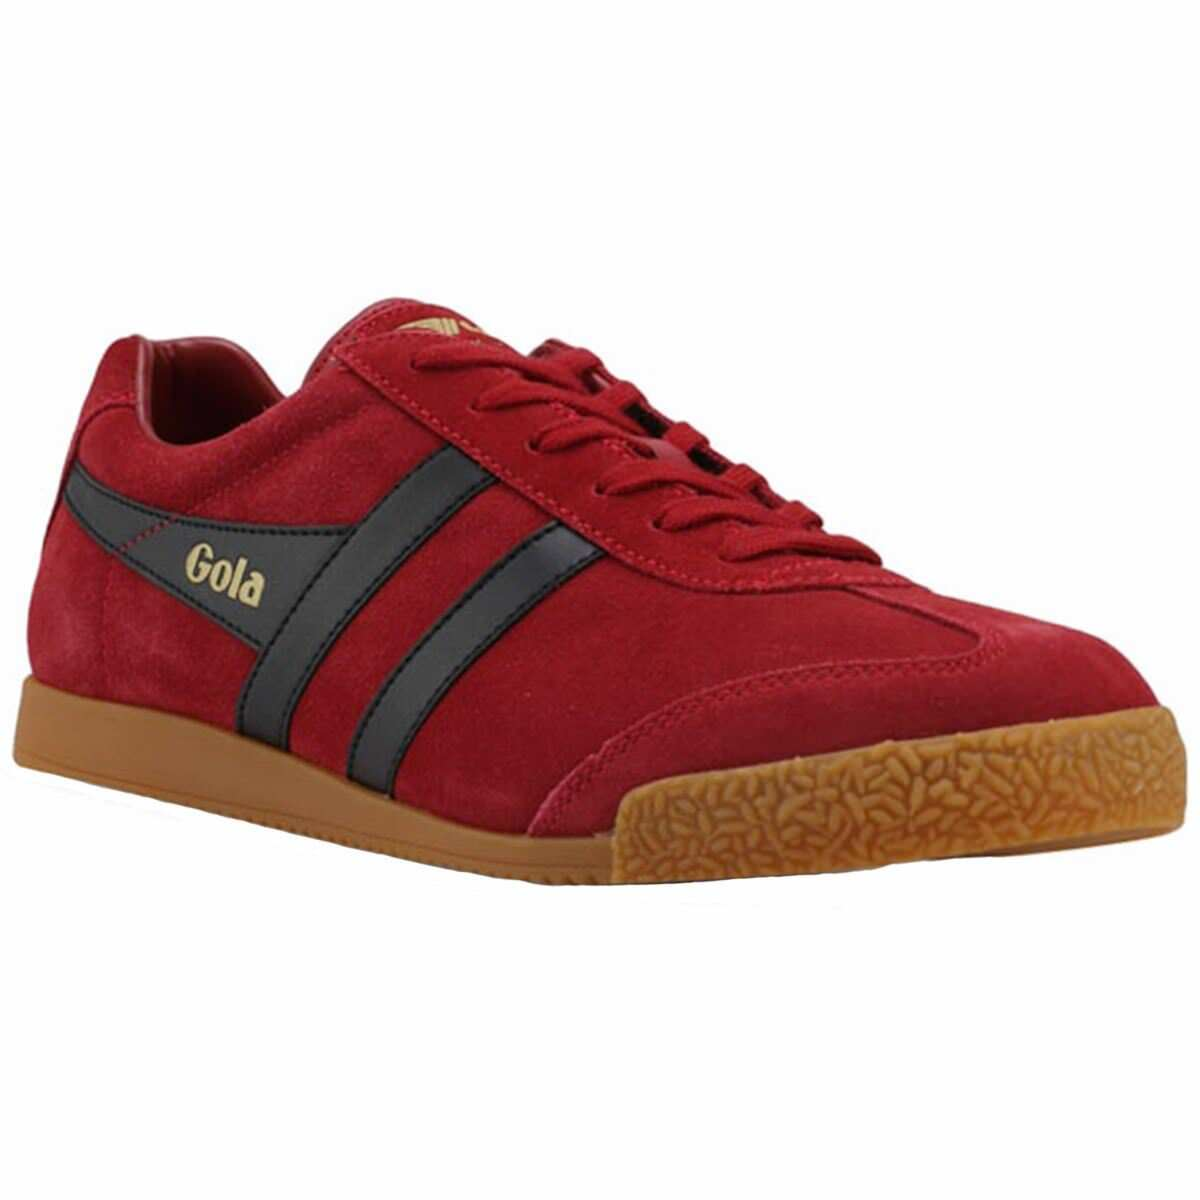 Gola Harrier Deep Red Black Mens Suede Classic Low-top Retro Sneakers Trainers